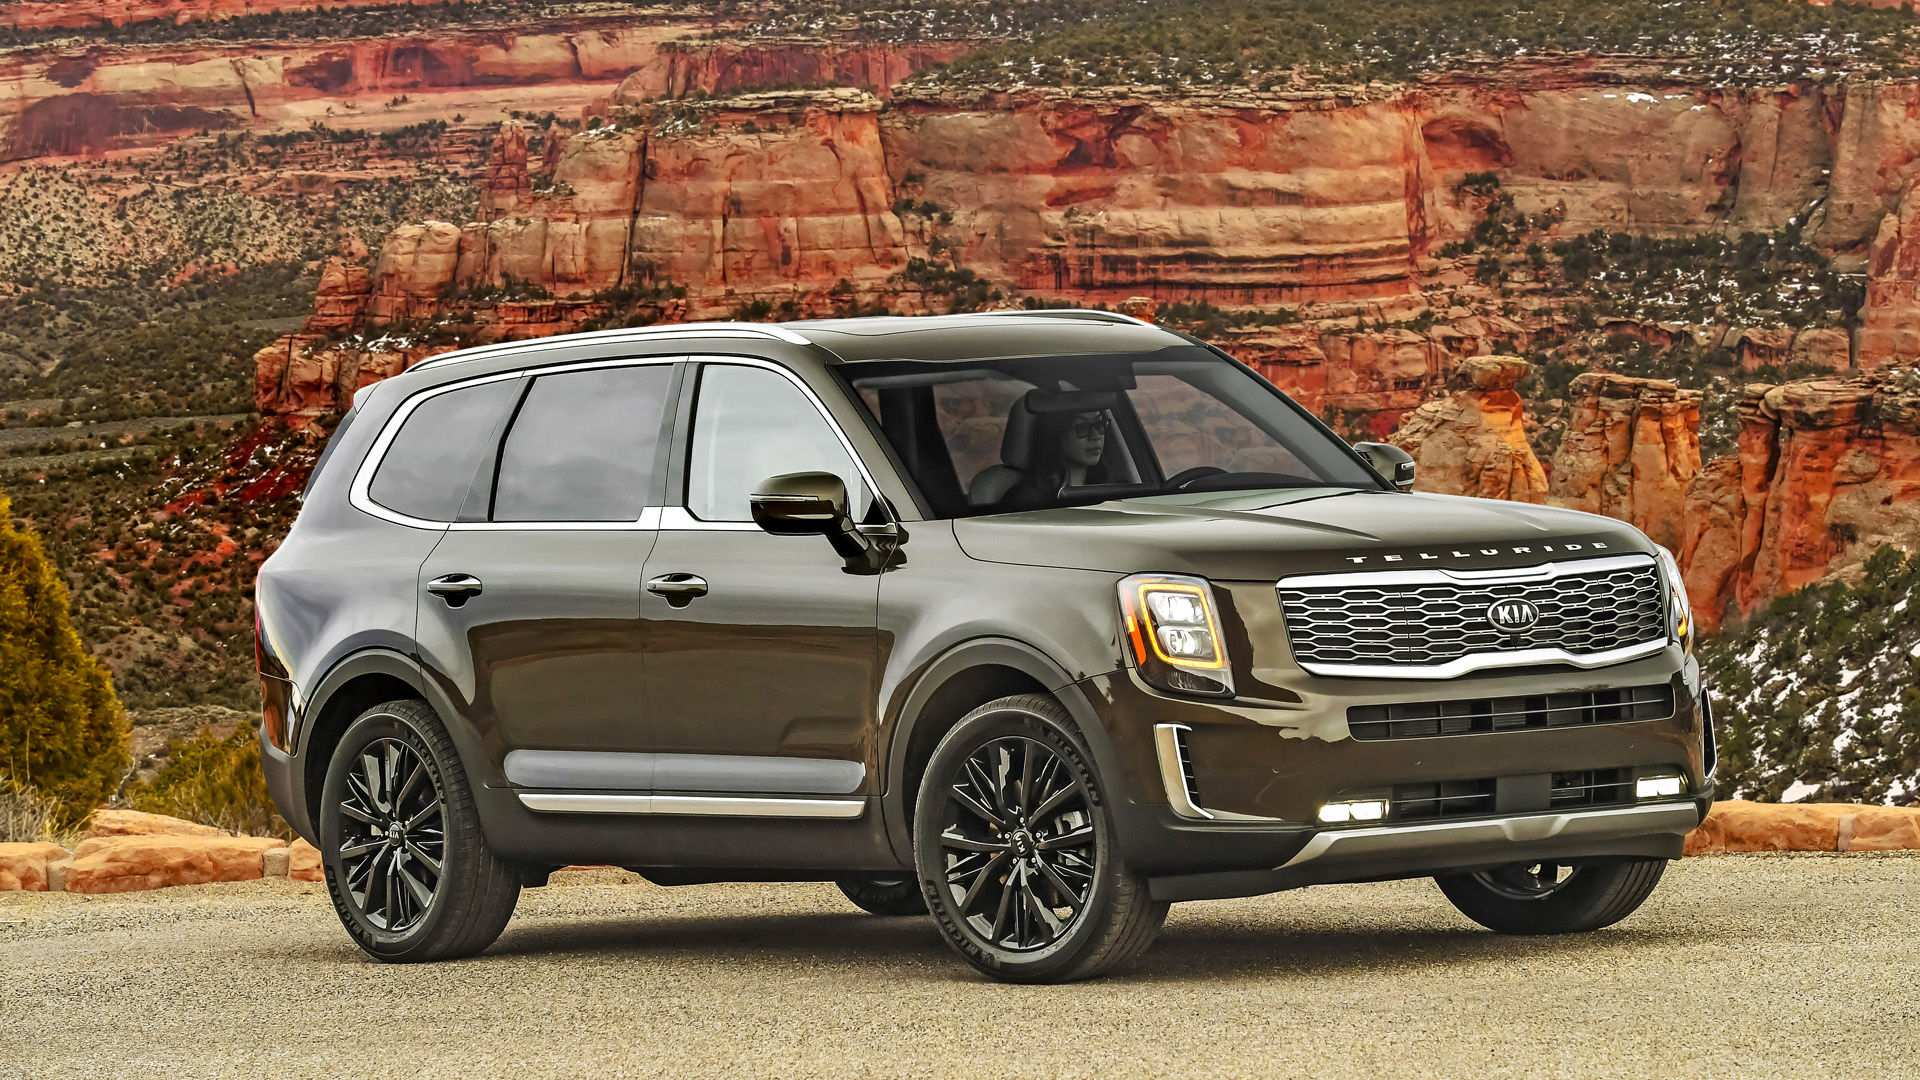 51 All New 2020 Kia Telluride Warranty Overview